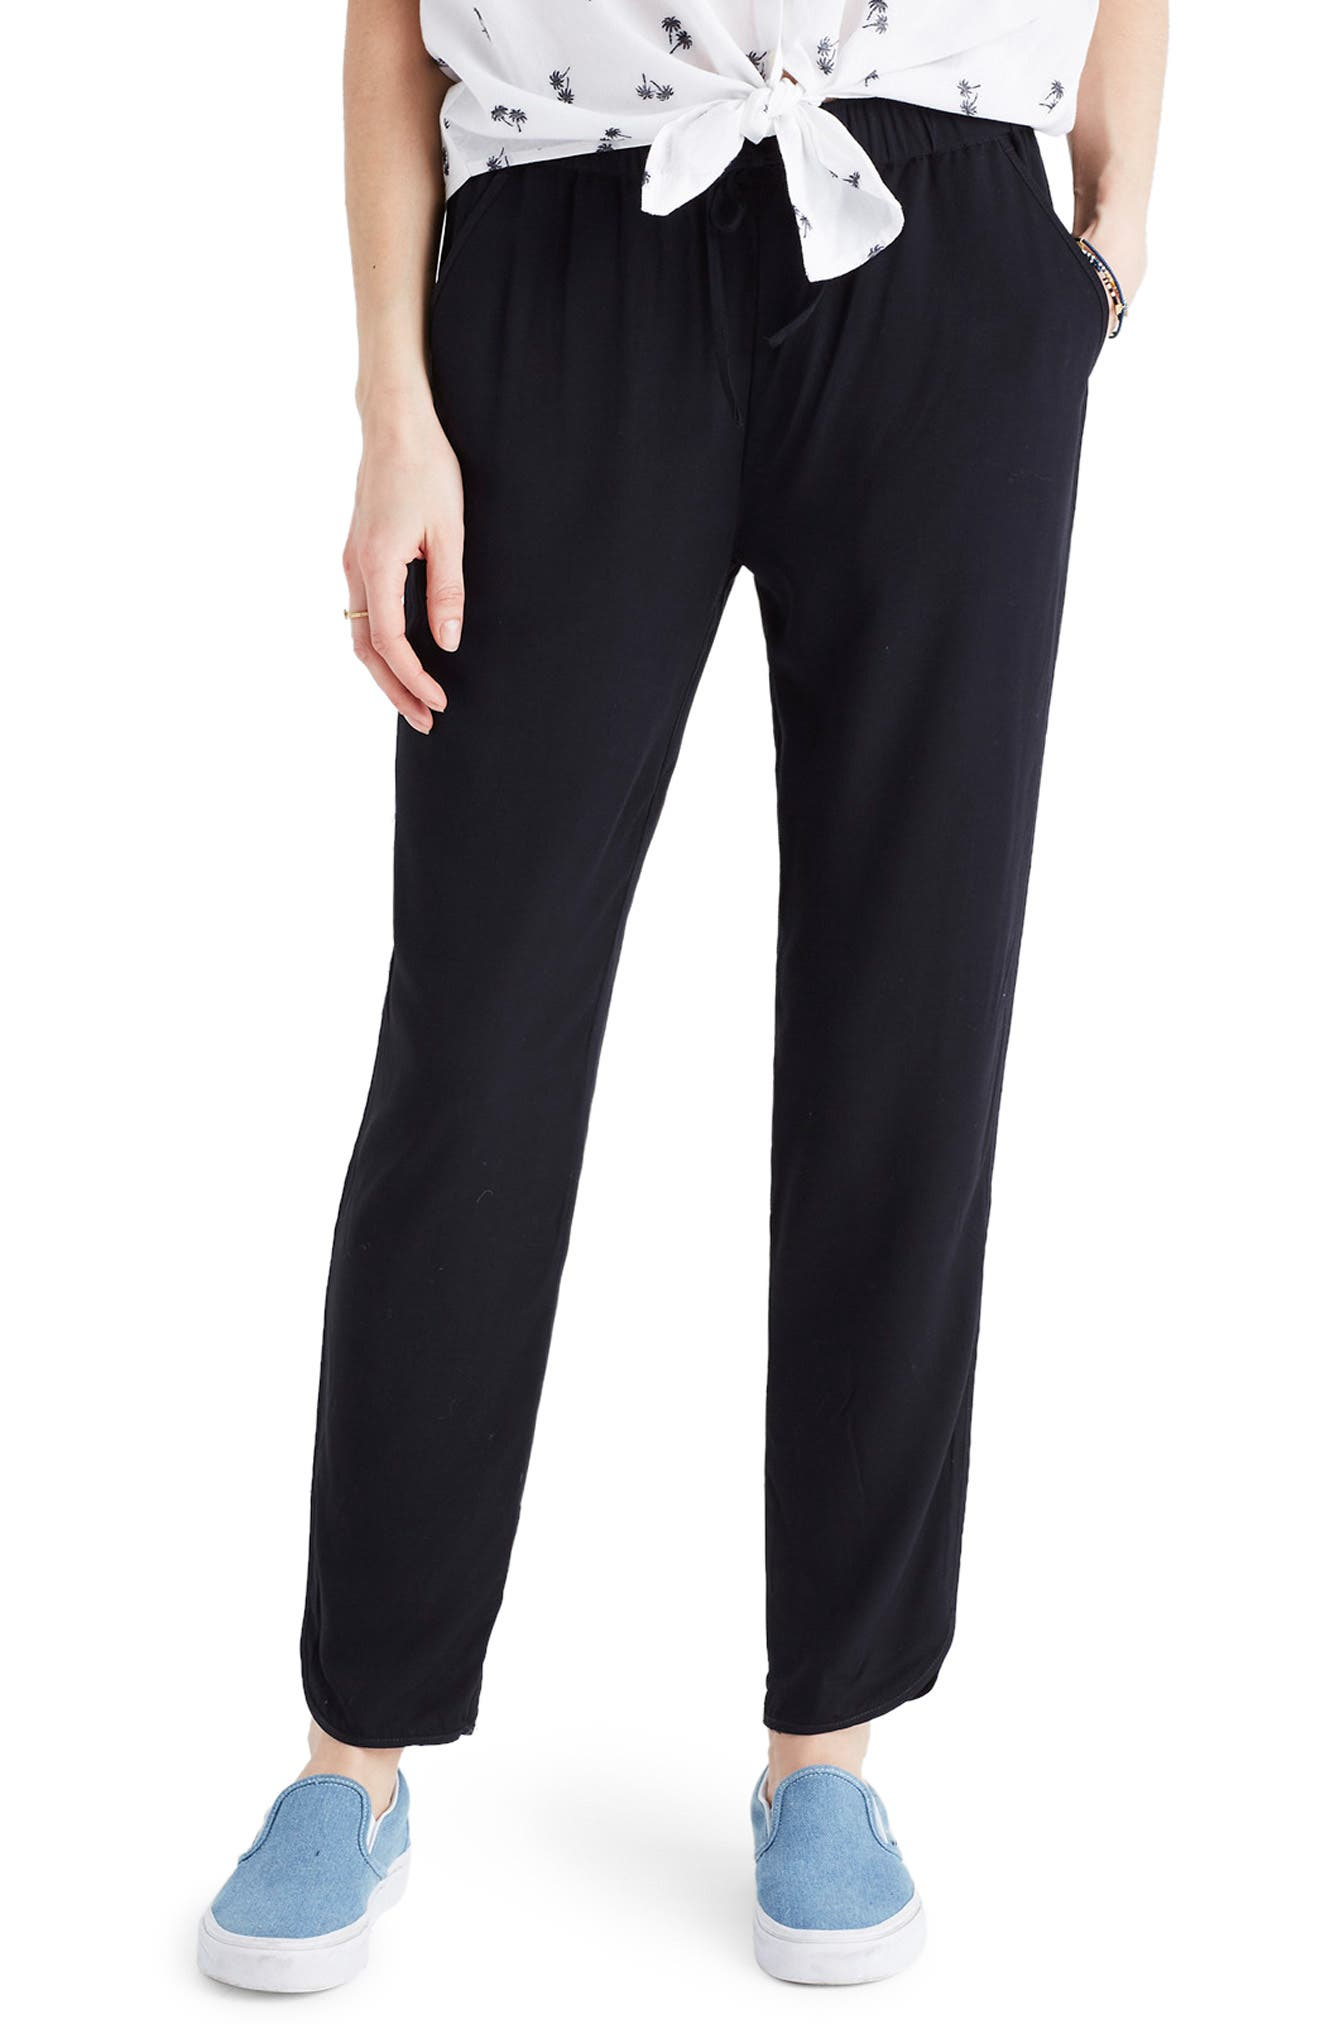 MADEWELL,                             Track Trousers,                             Main thumbnail 1, color,                             TRUE BLACK